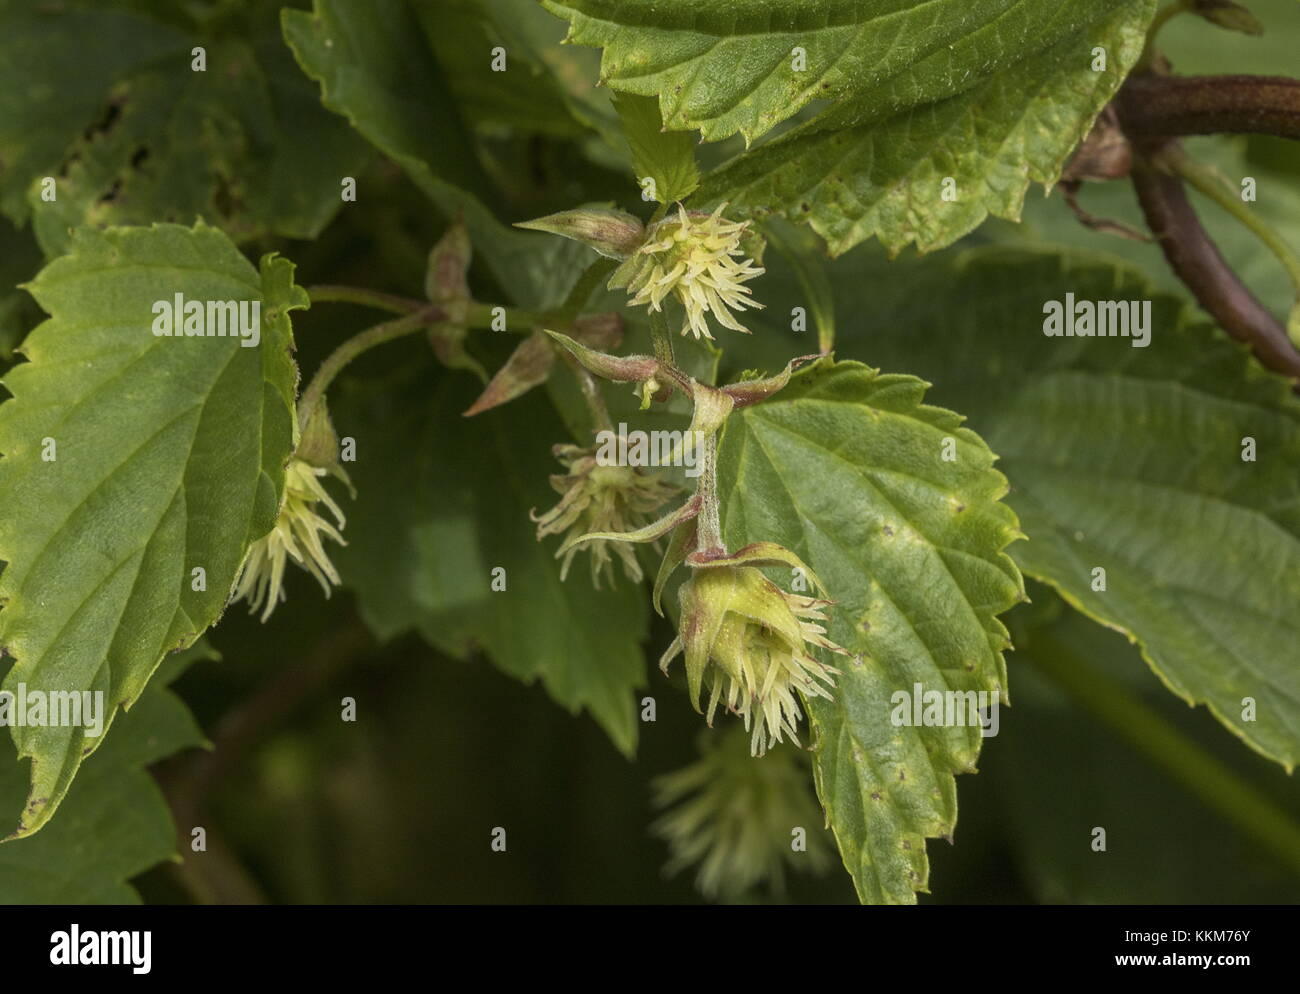 Hop, Humulus lupulus, female flowers with styles. - Stock Image